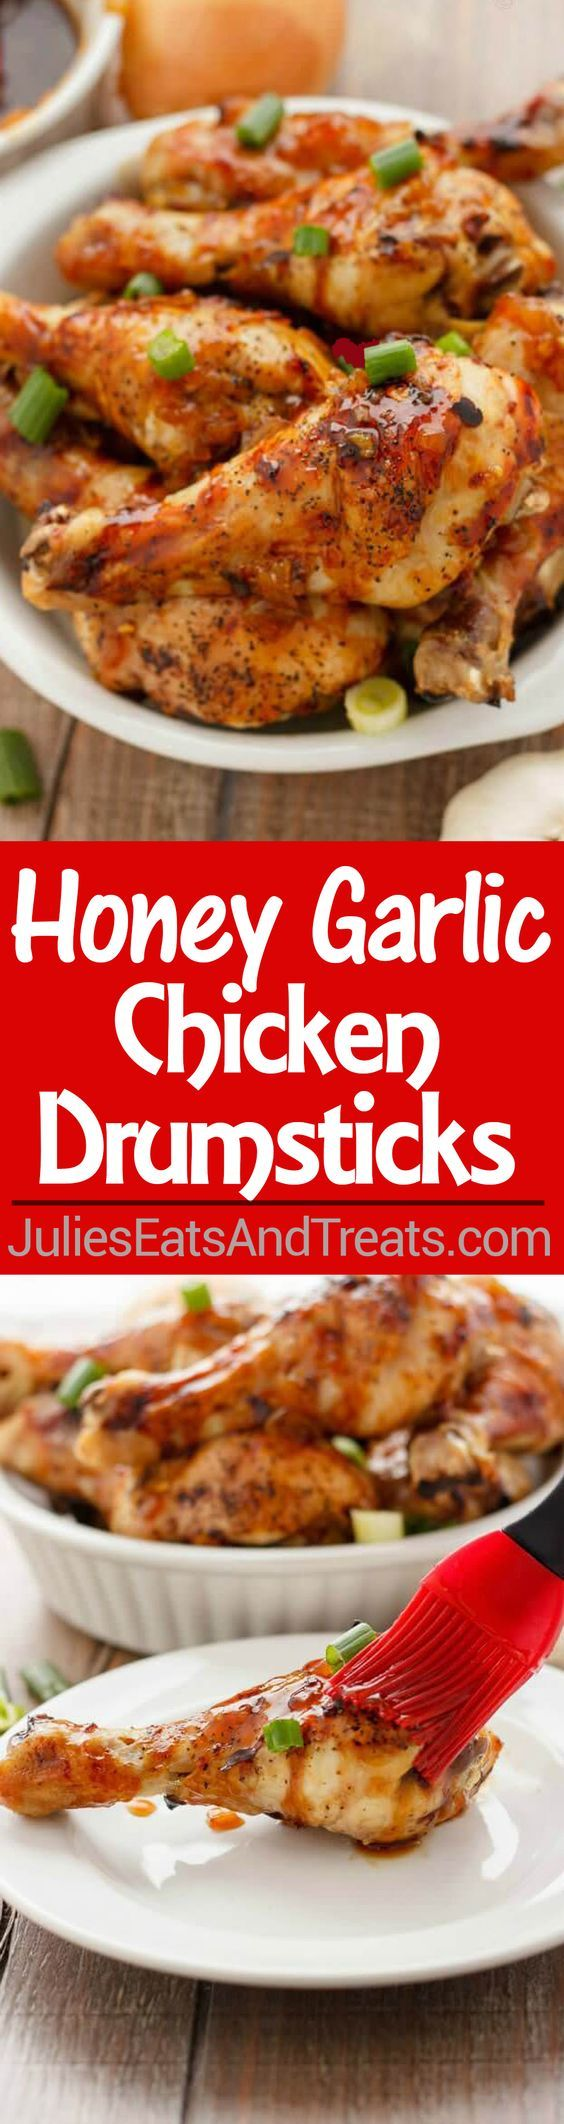 Honey Garlic Chicken Drumsticks Recipe ~ take a inexpensive cut of chicken and transform it into a quick and easy weeknight dinner!